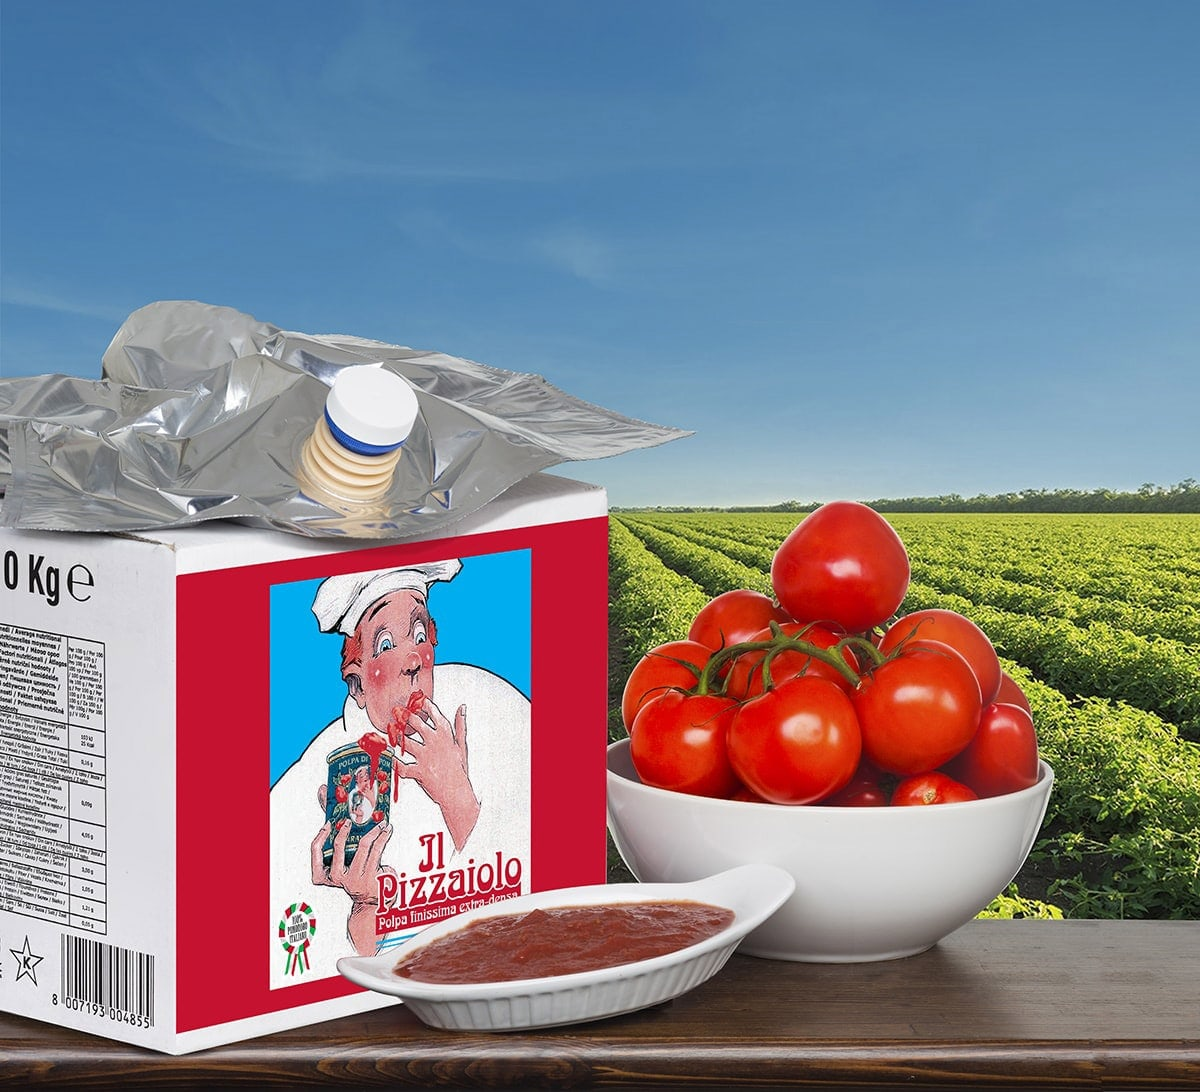 crushed tomatoes bag in box